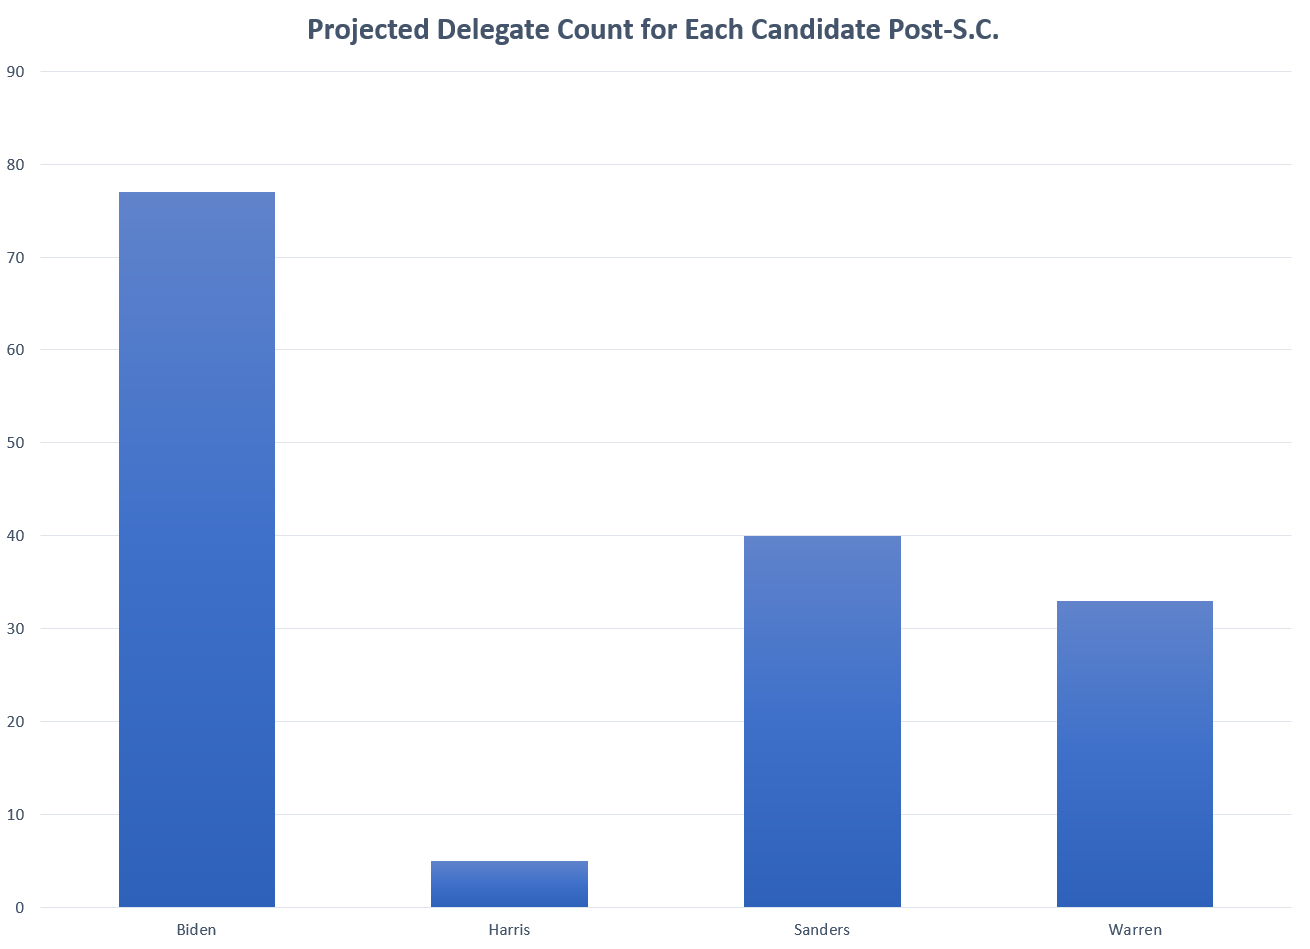 Projected Delegate Count in a 4-Way Race